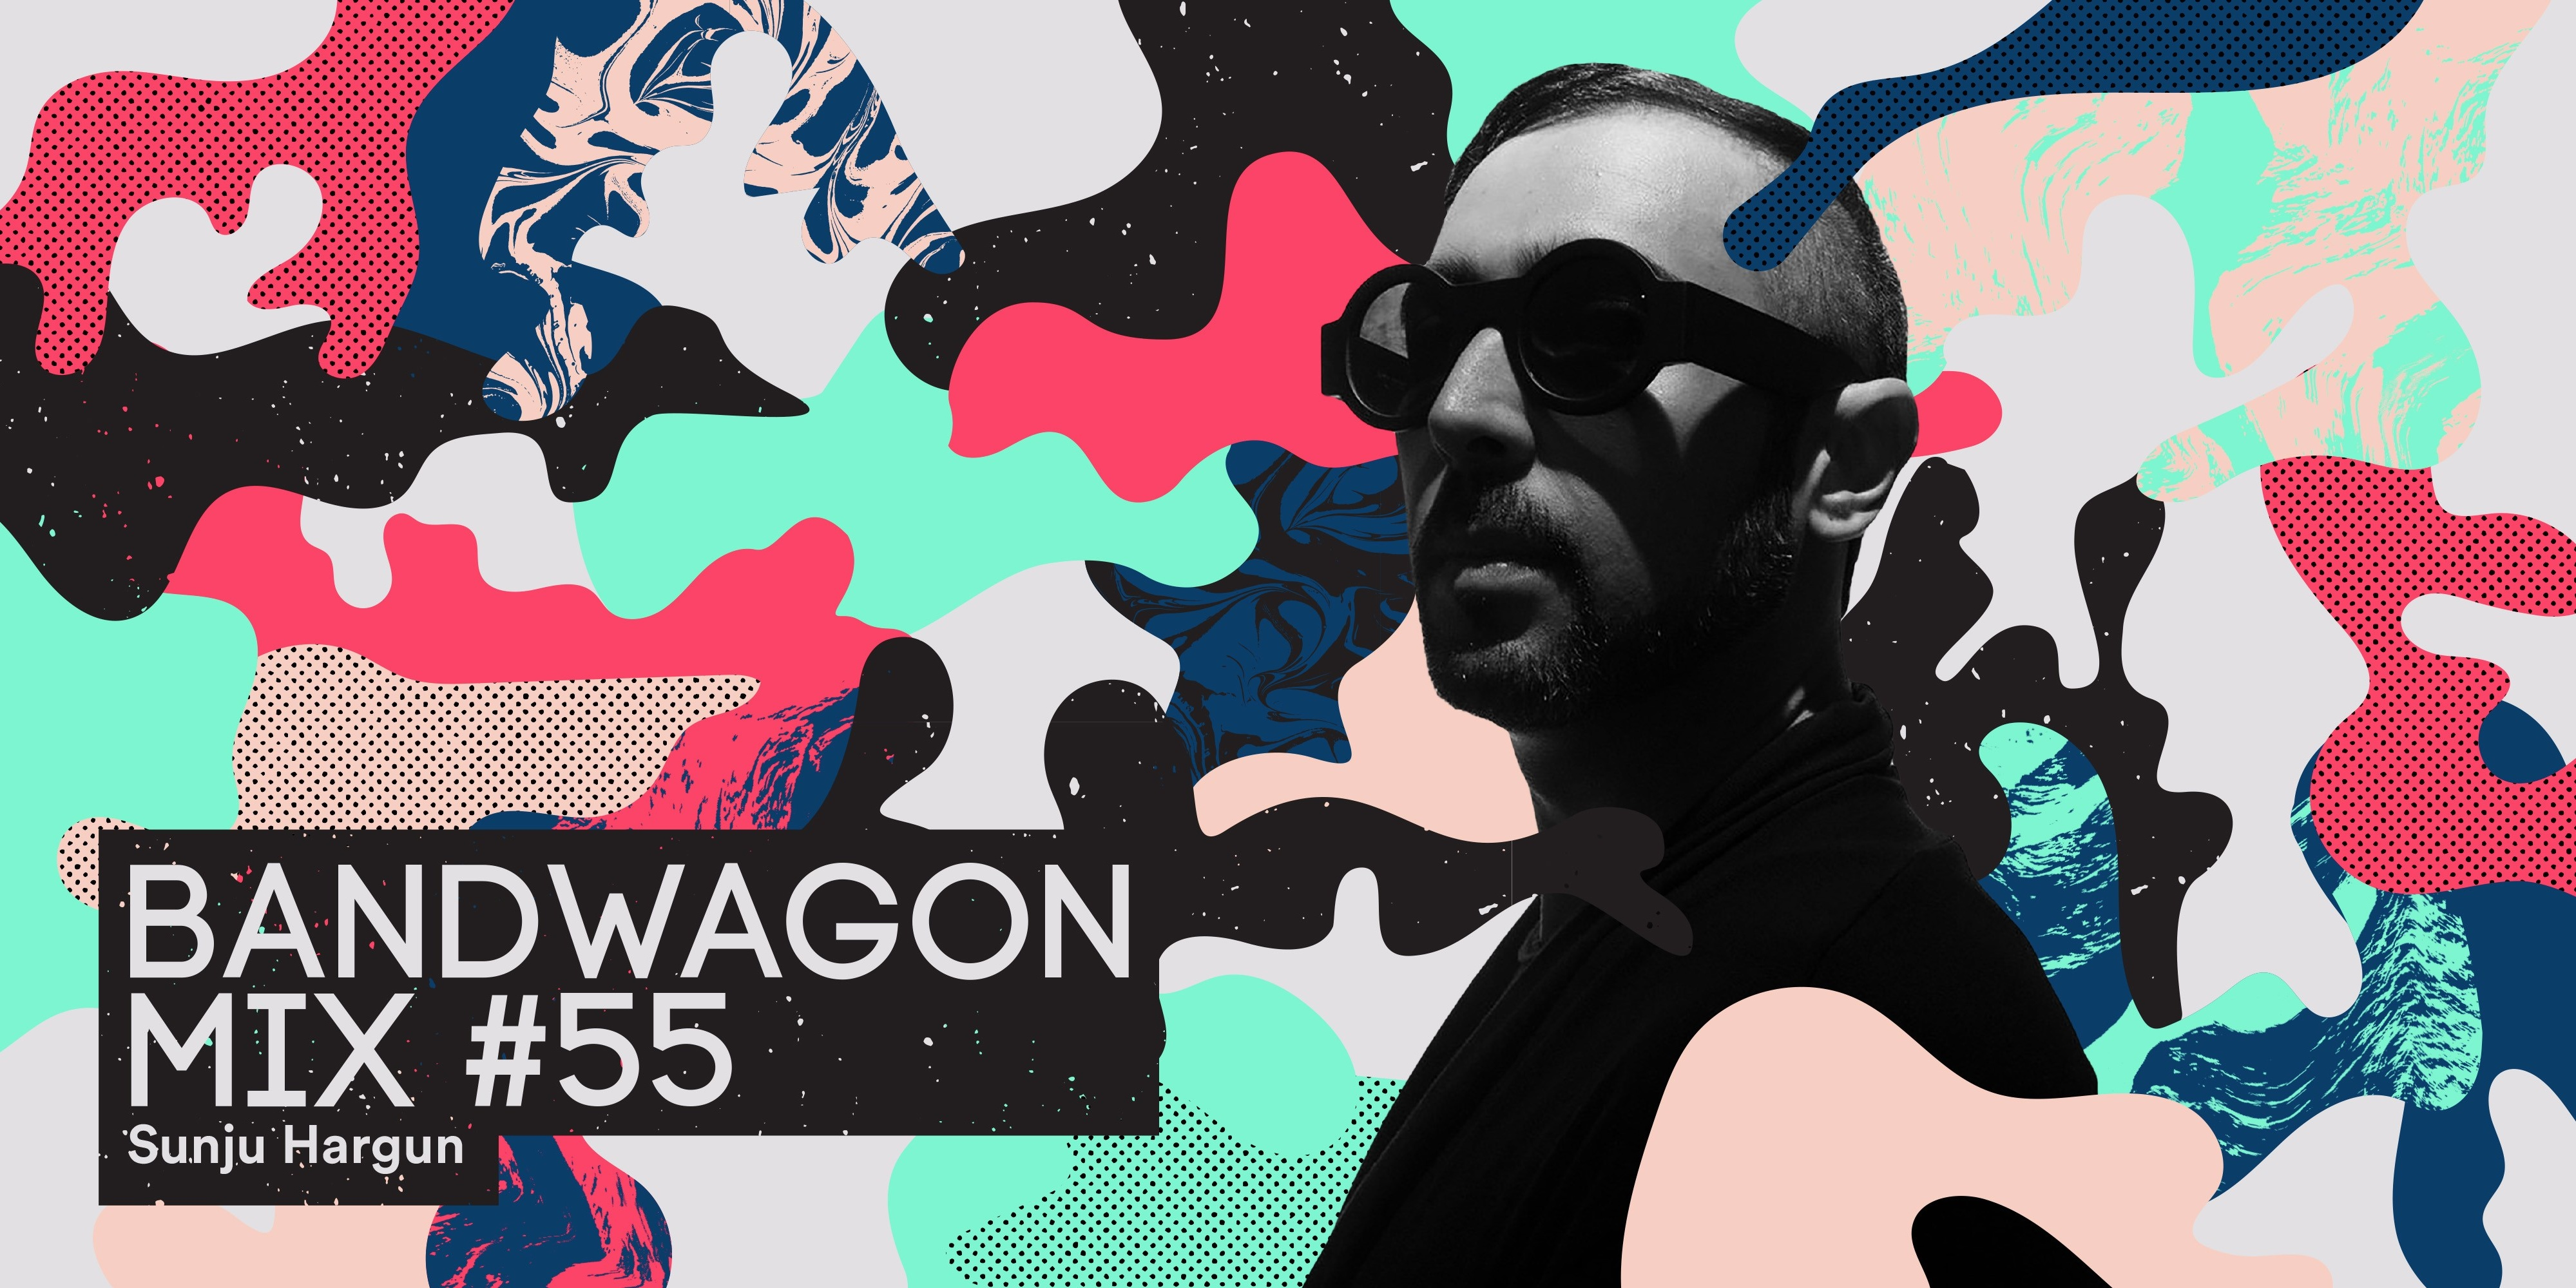 Bandwagon Mix #55: Sunju Hargun